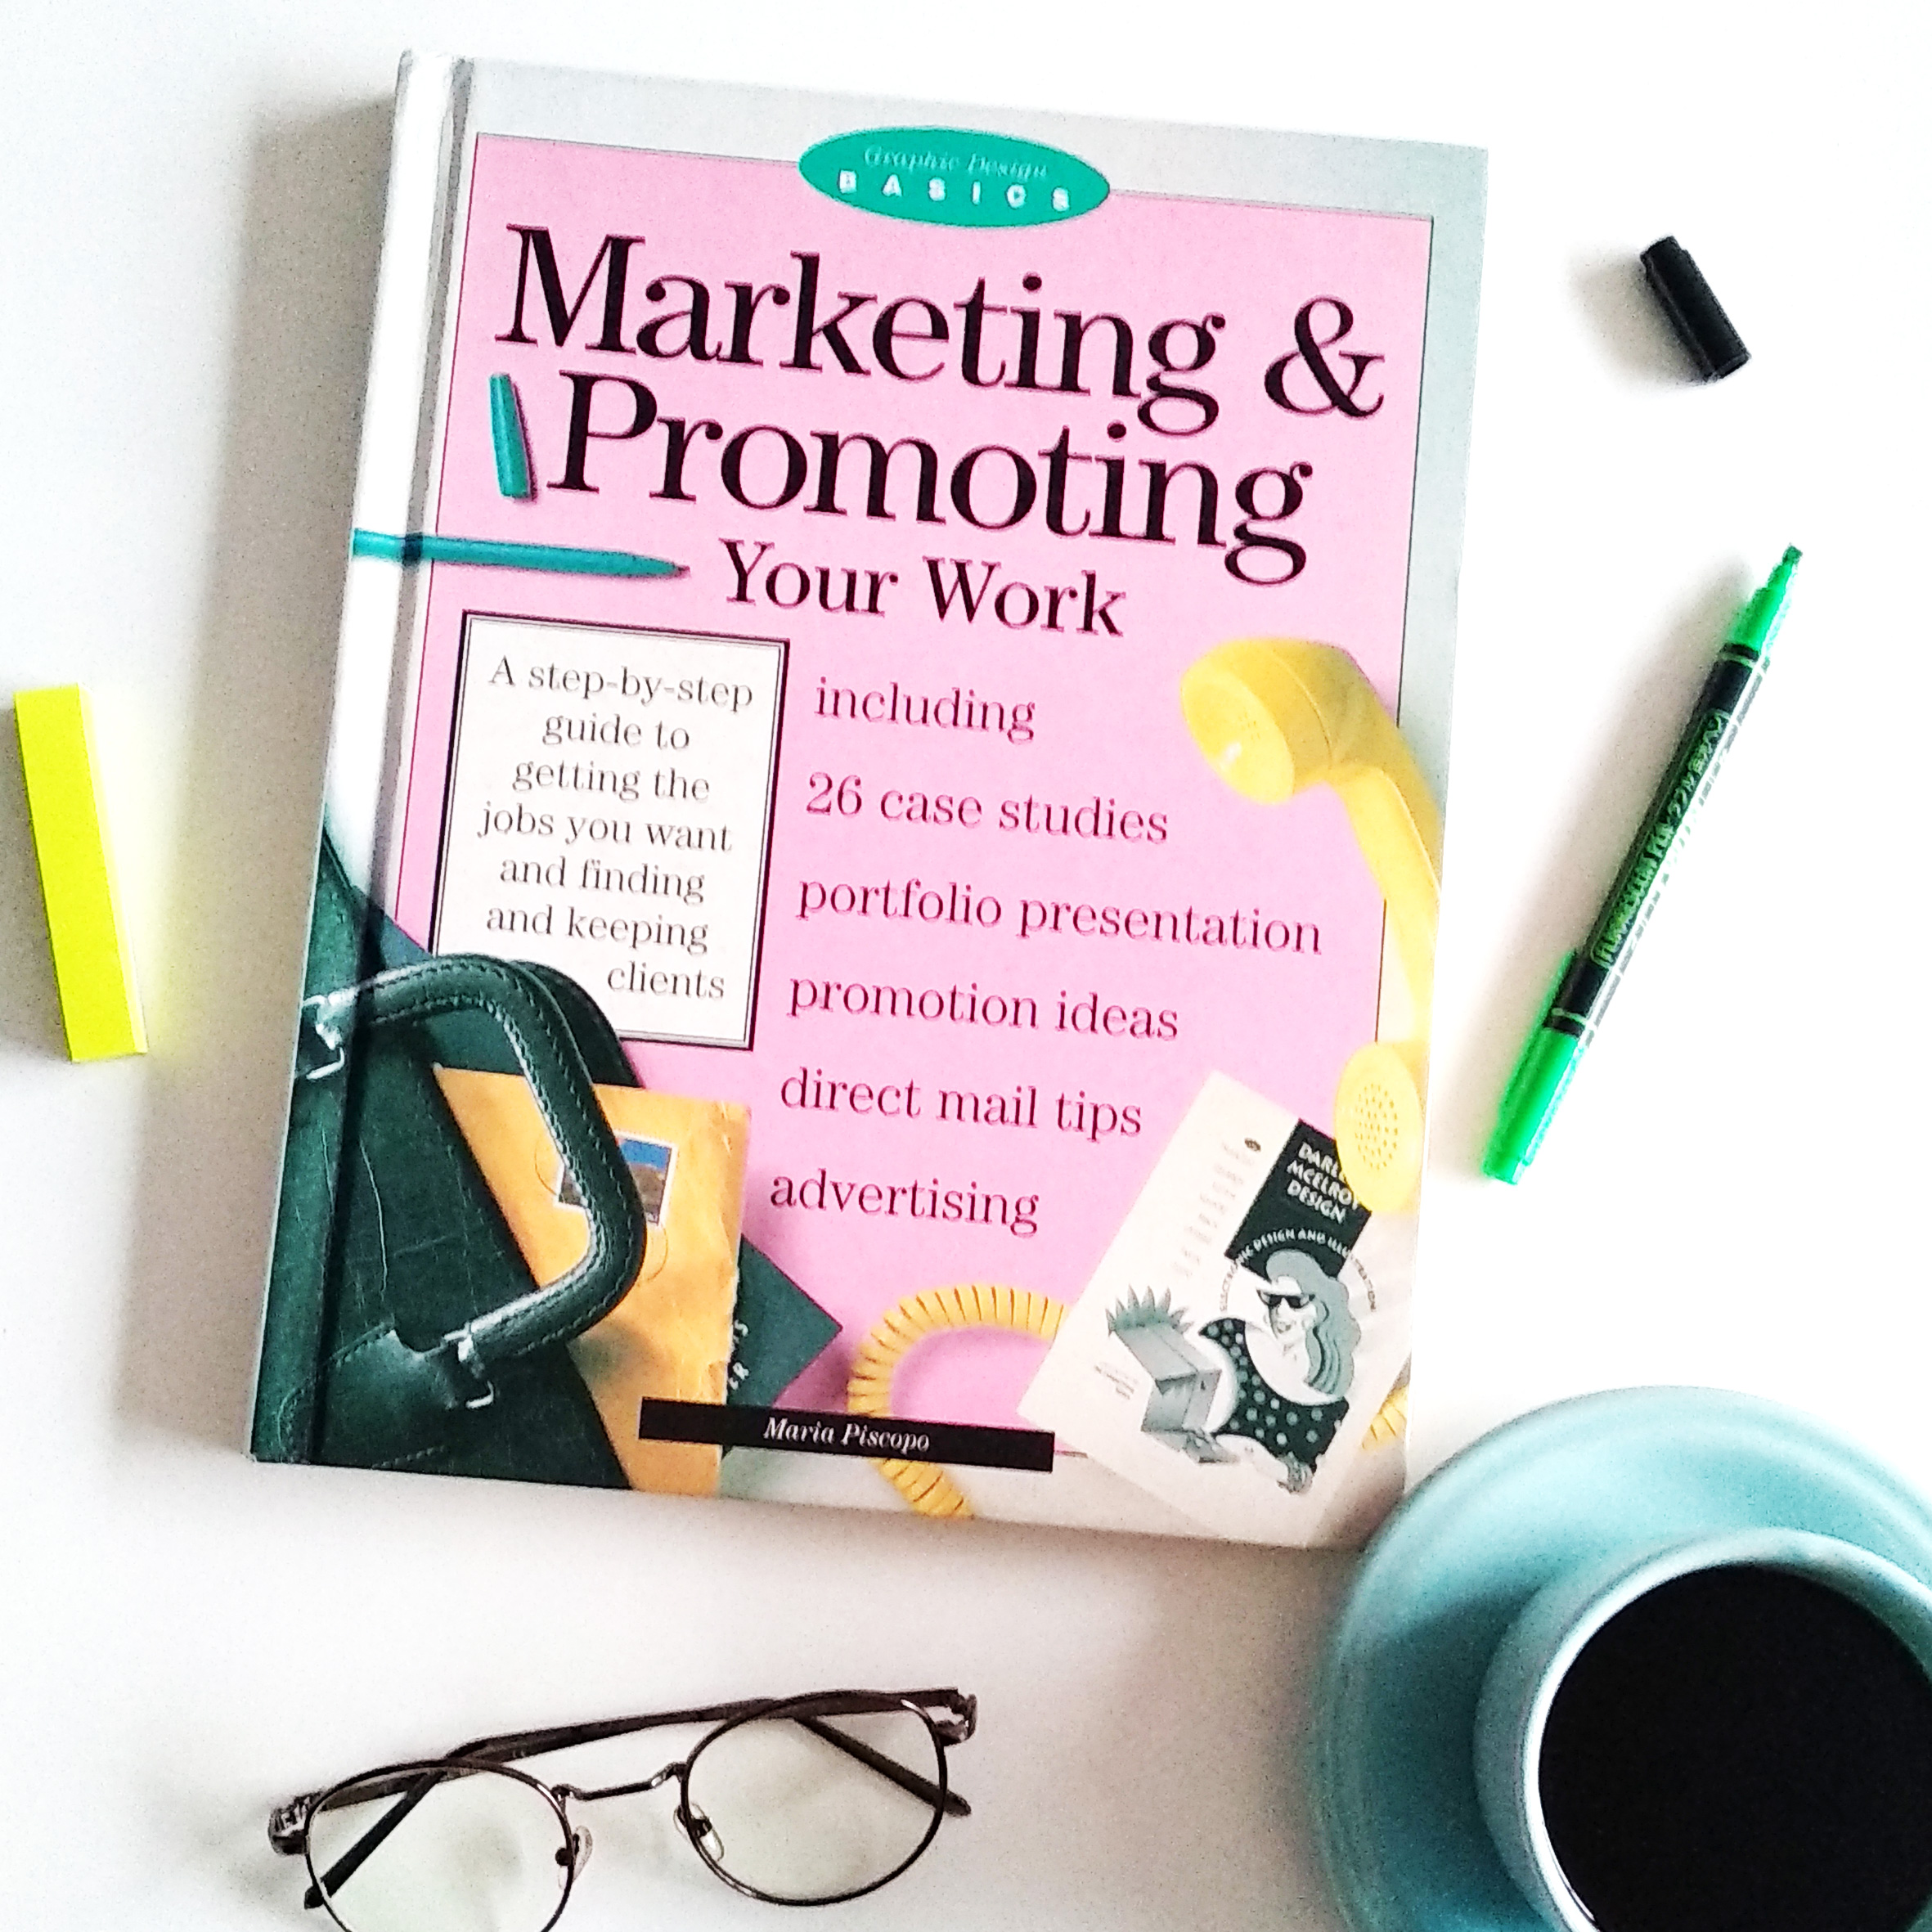 MARKETING & PROMOTING YOUR WORK Graphic Design Guide Book By Maria Piscopo